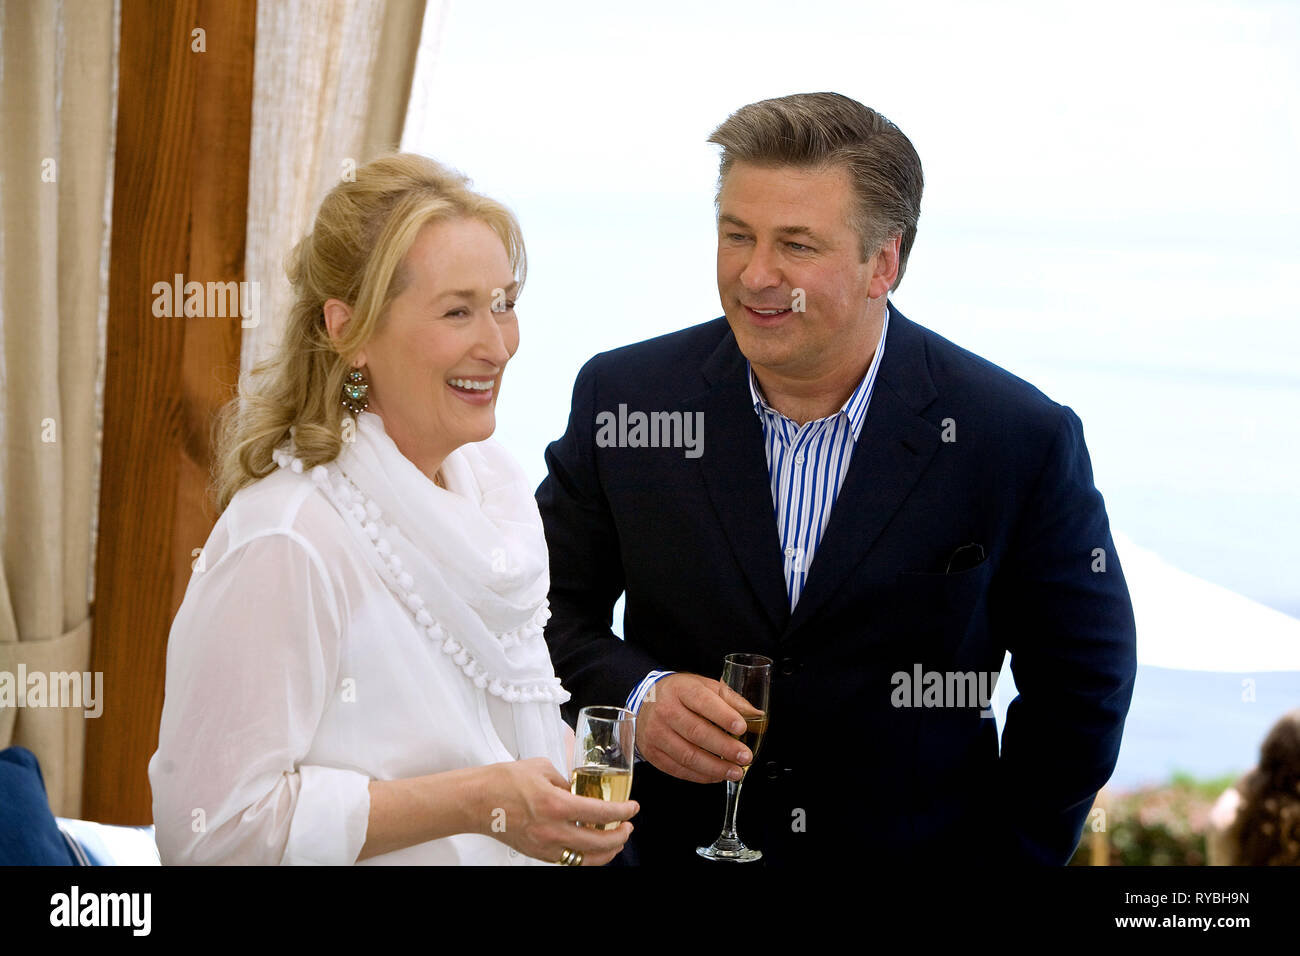 MERYL STREEP, ALEC BALDWIN, IT'S COMPLICATED, 2009 - Stock Image